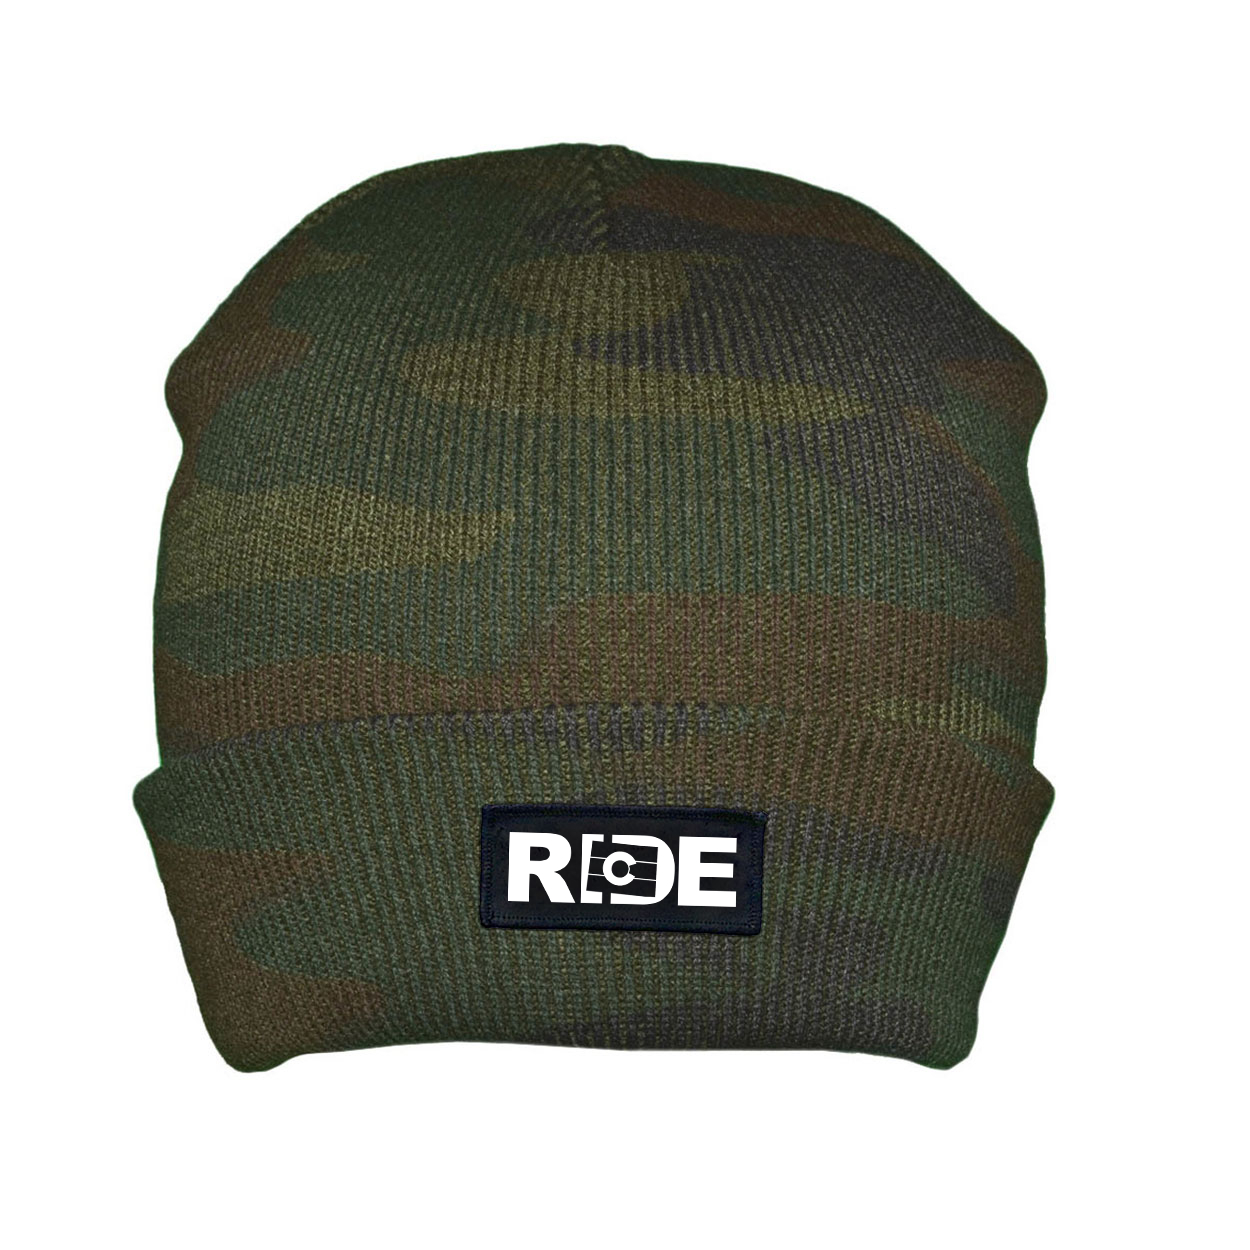 Ride Colorado Night Out Woven Patch Roll Up Skully Beanie Camo (White Logo)